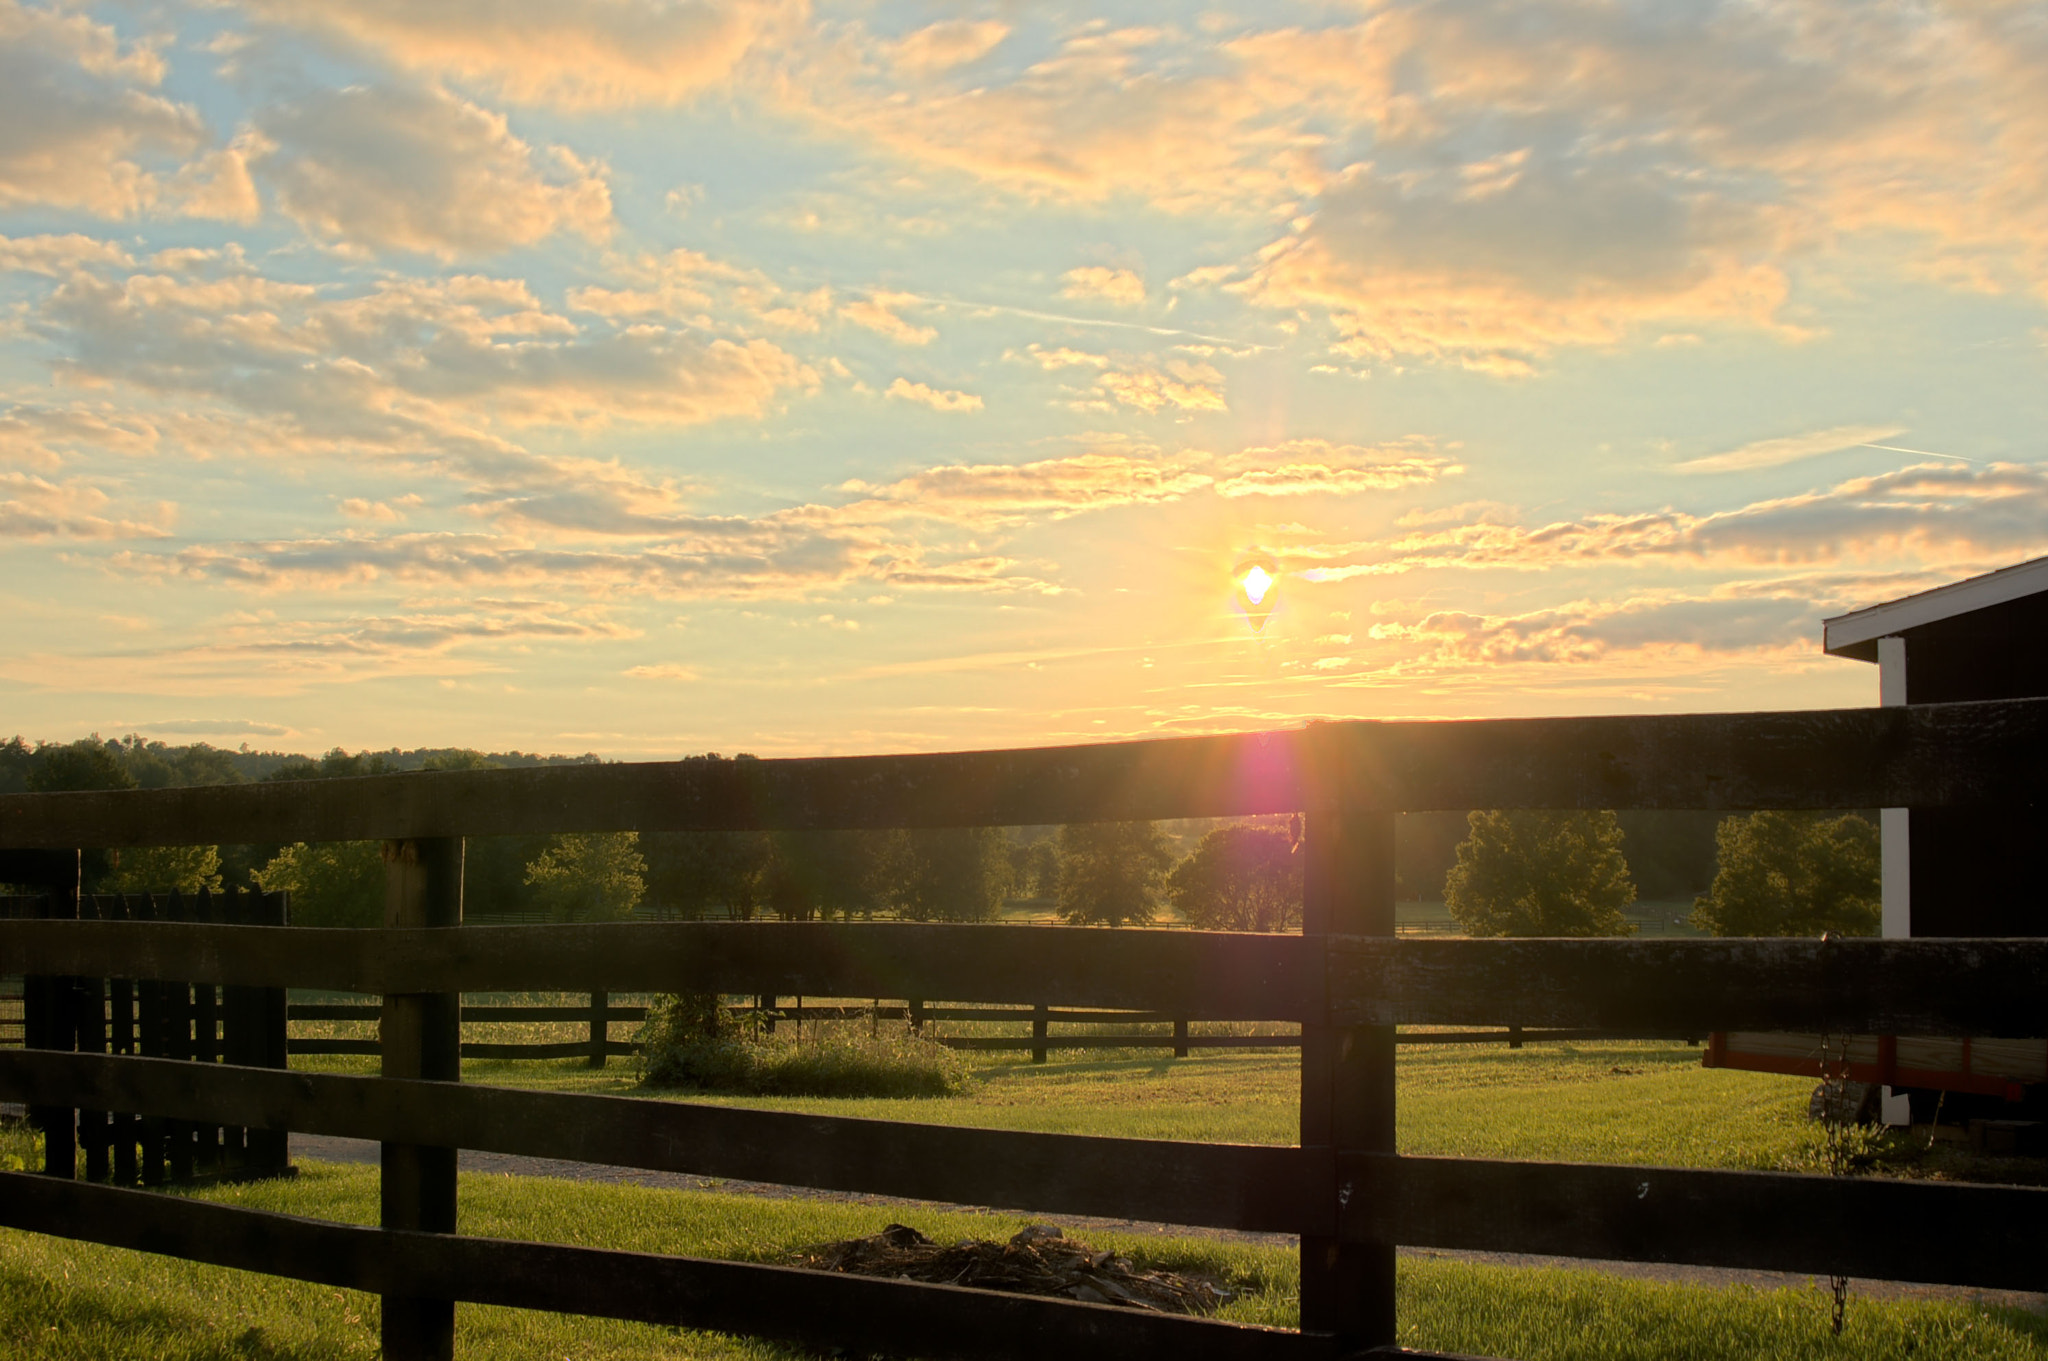 Photograph Sunset on a Horse Farm by Brian Lauer on 500px